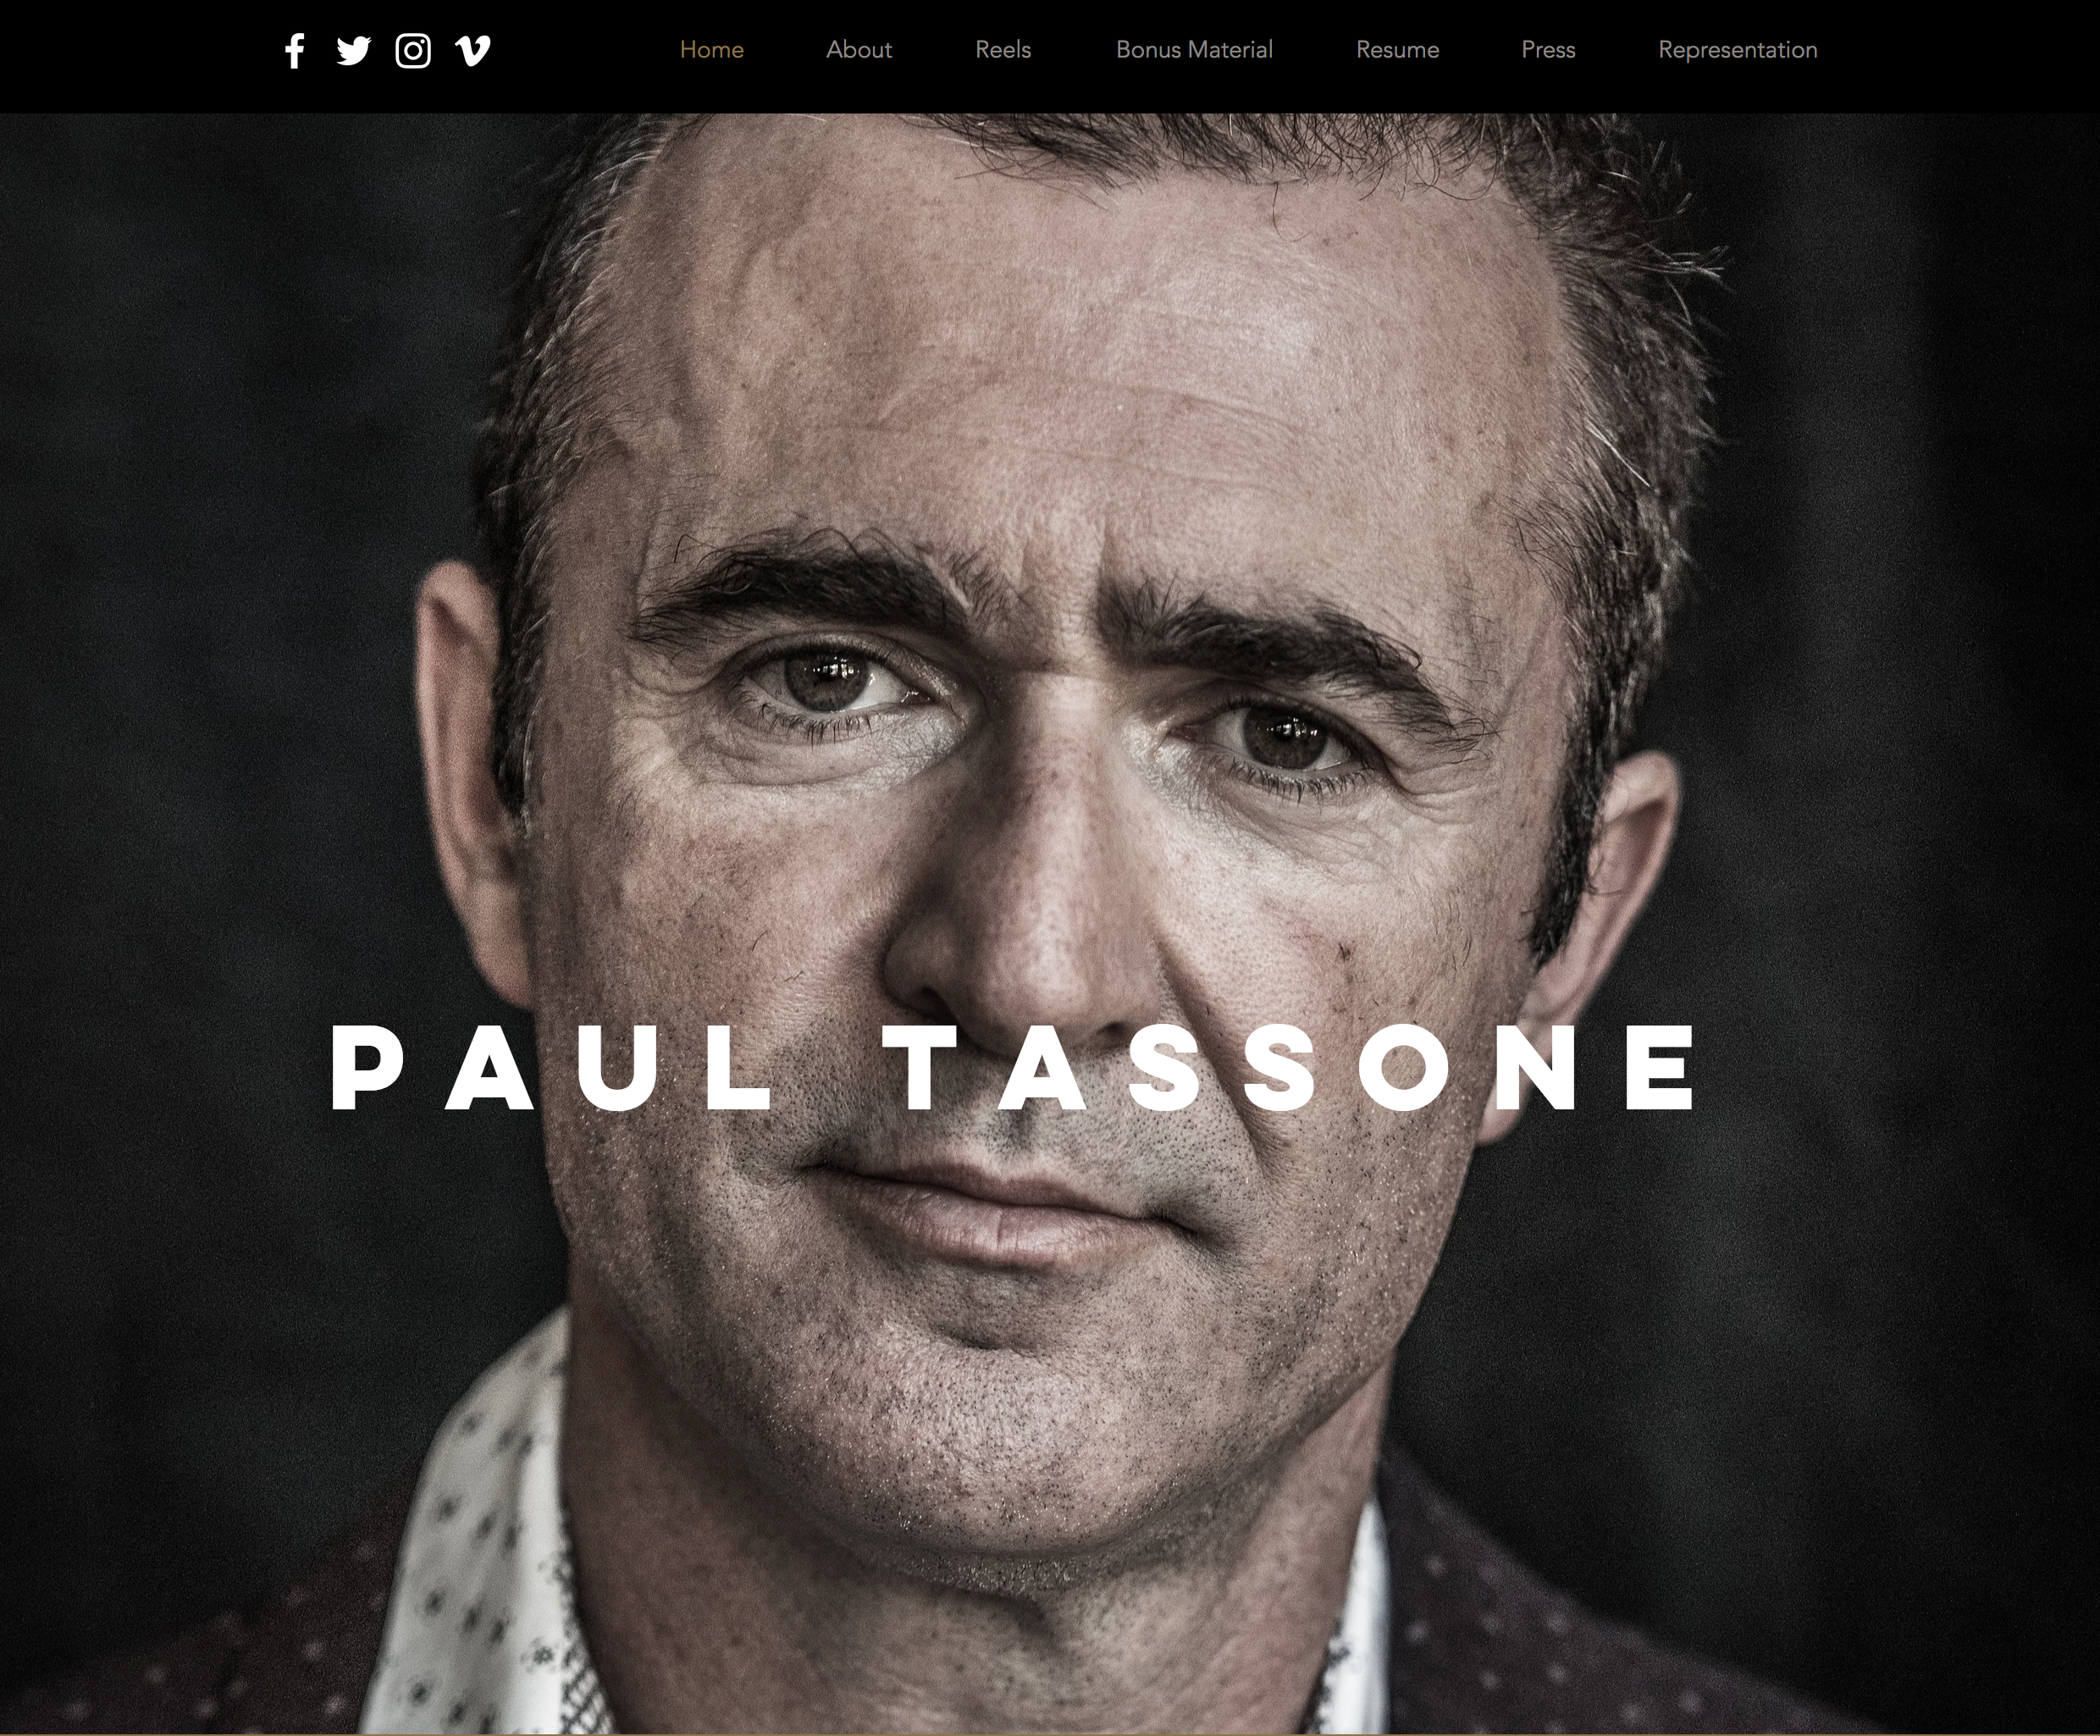 Paul Tassone, Actor